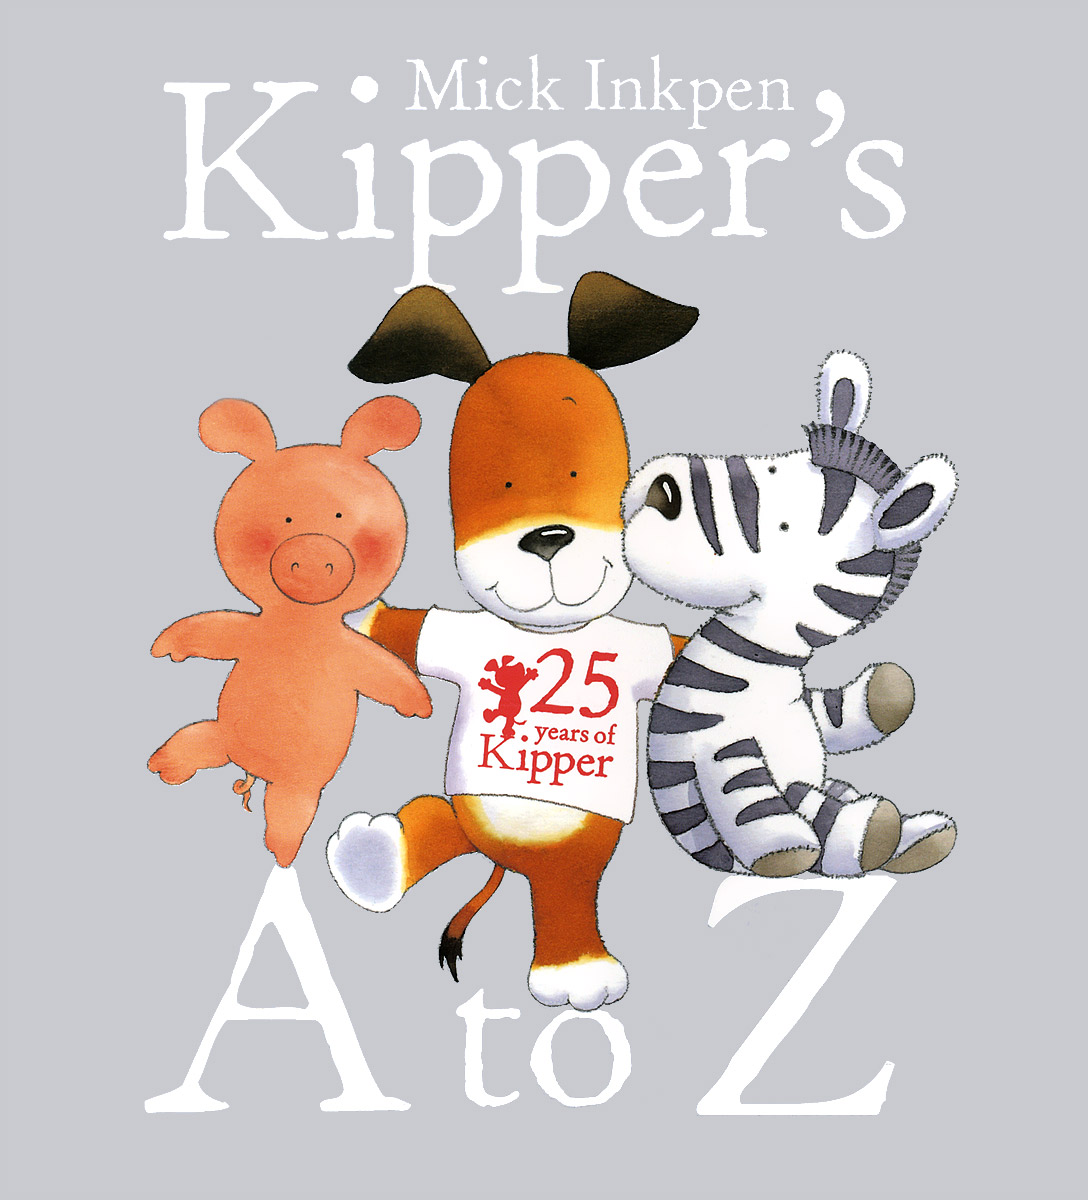 Kipper's A to Z mick johnson motivation is at